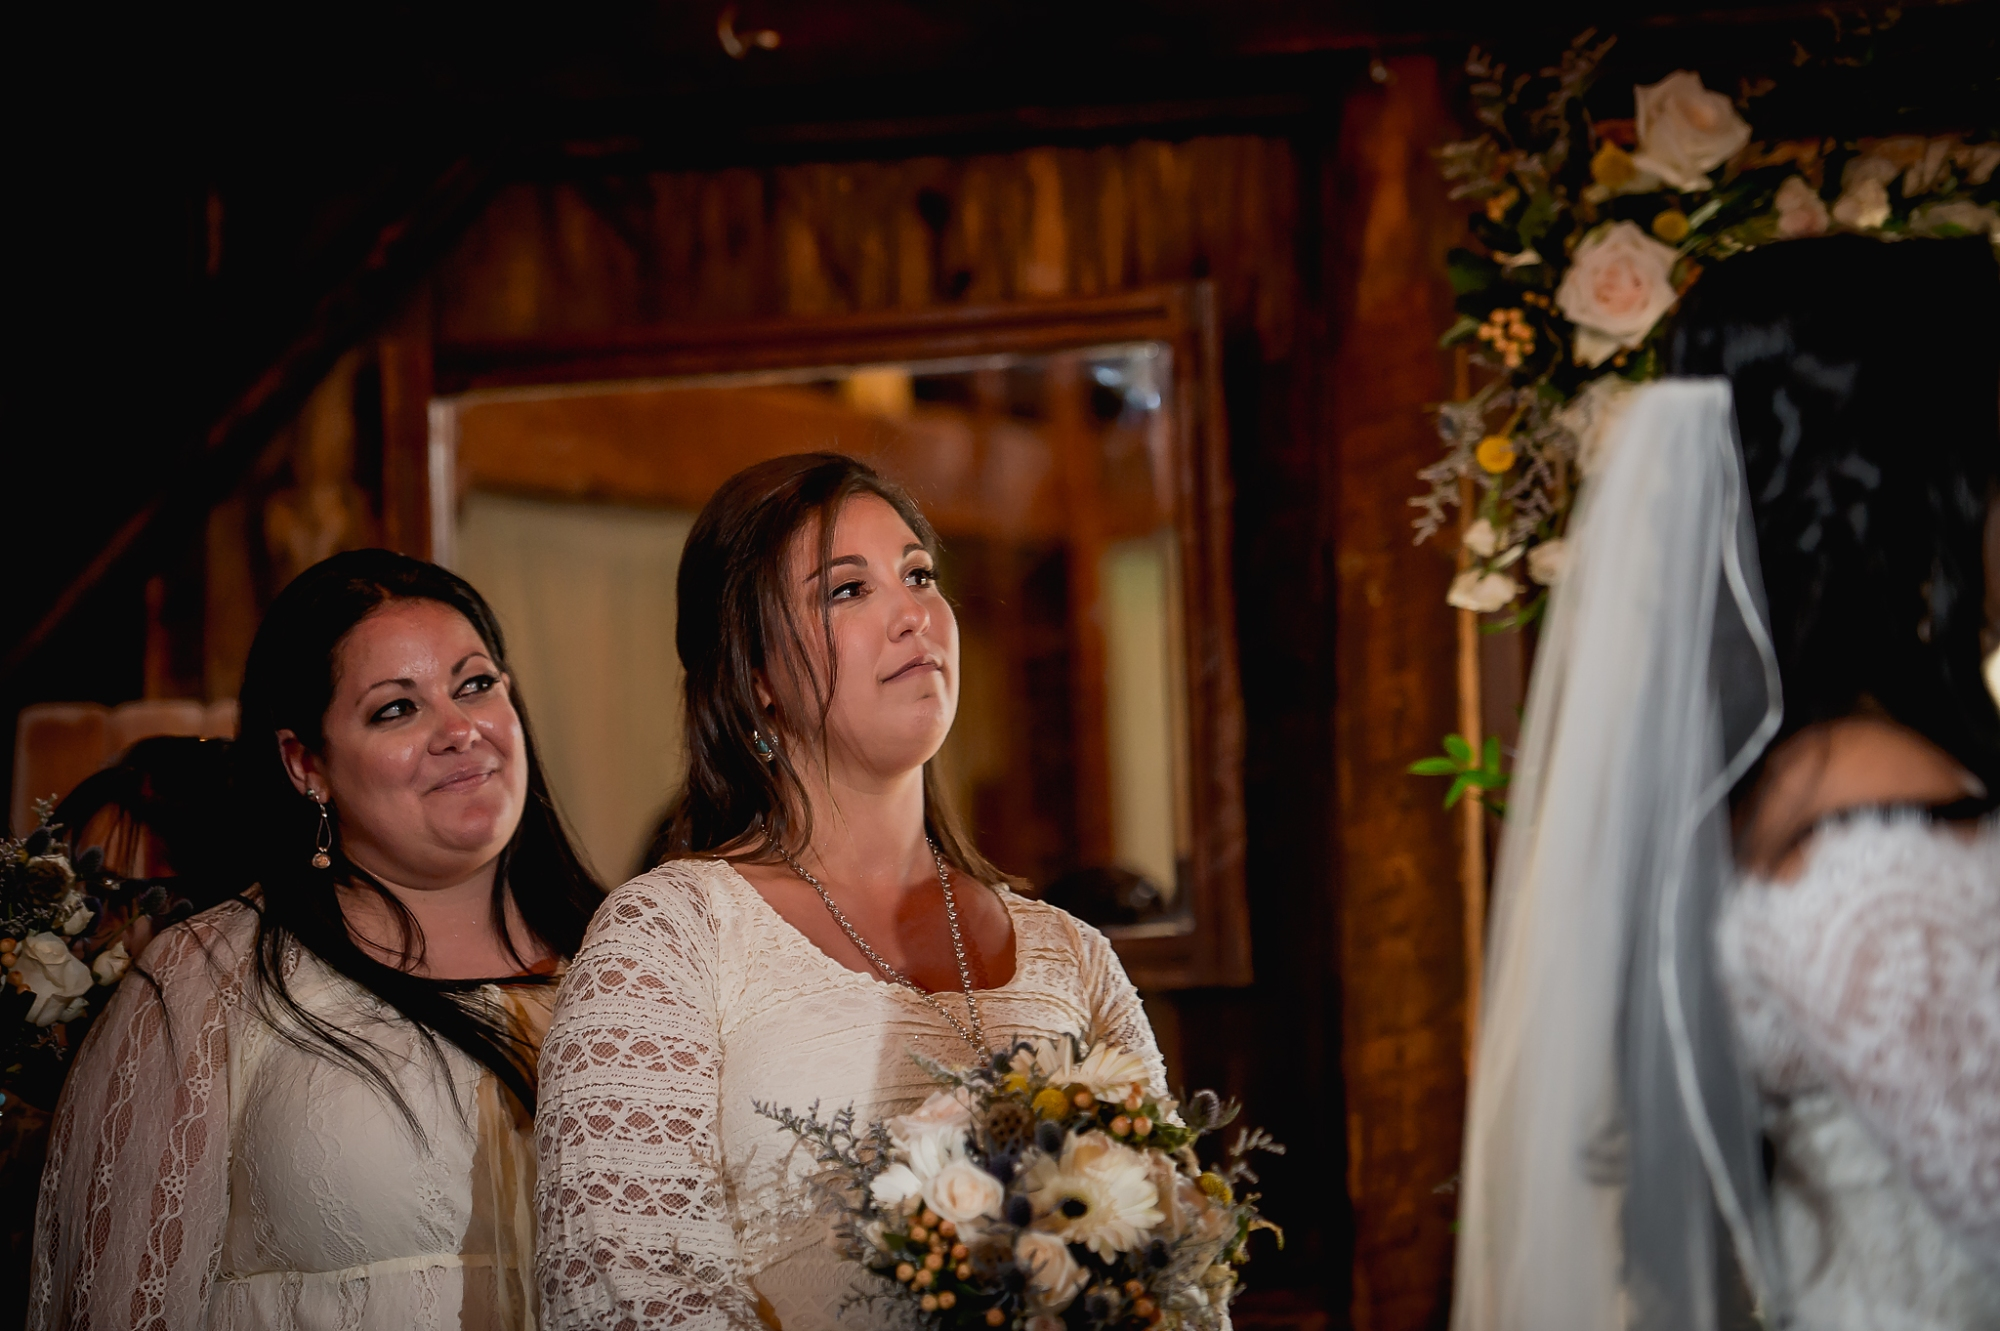 Jacks-Barn-Wedding-Janine-Collette-Photography42